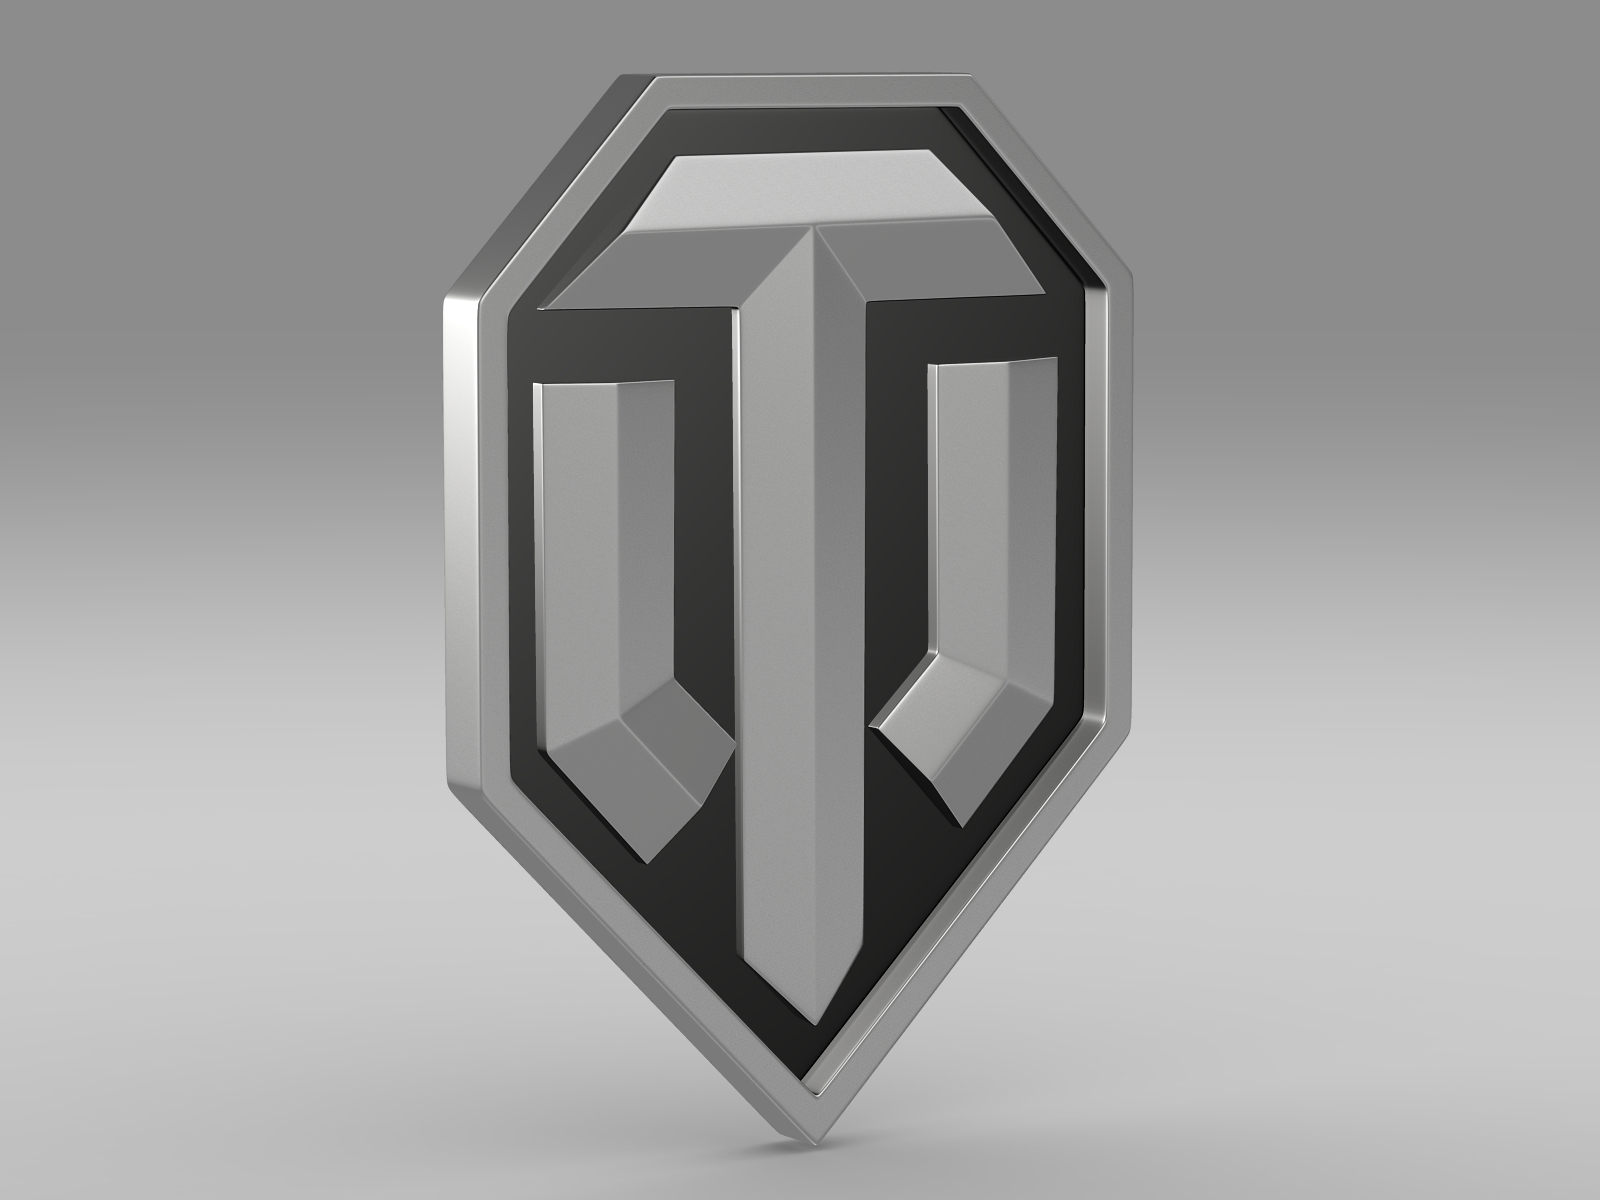 world of tanks logo 3d model 3ds fbx c4d lwo ma mb hrc xsi obj 221455